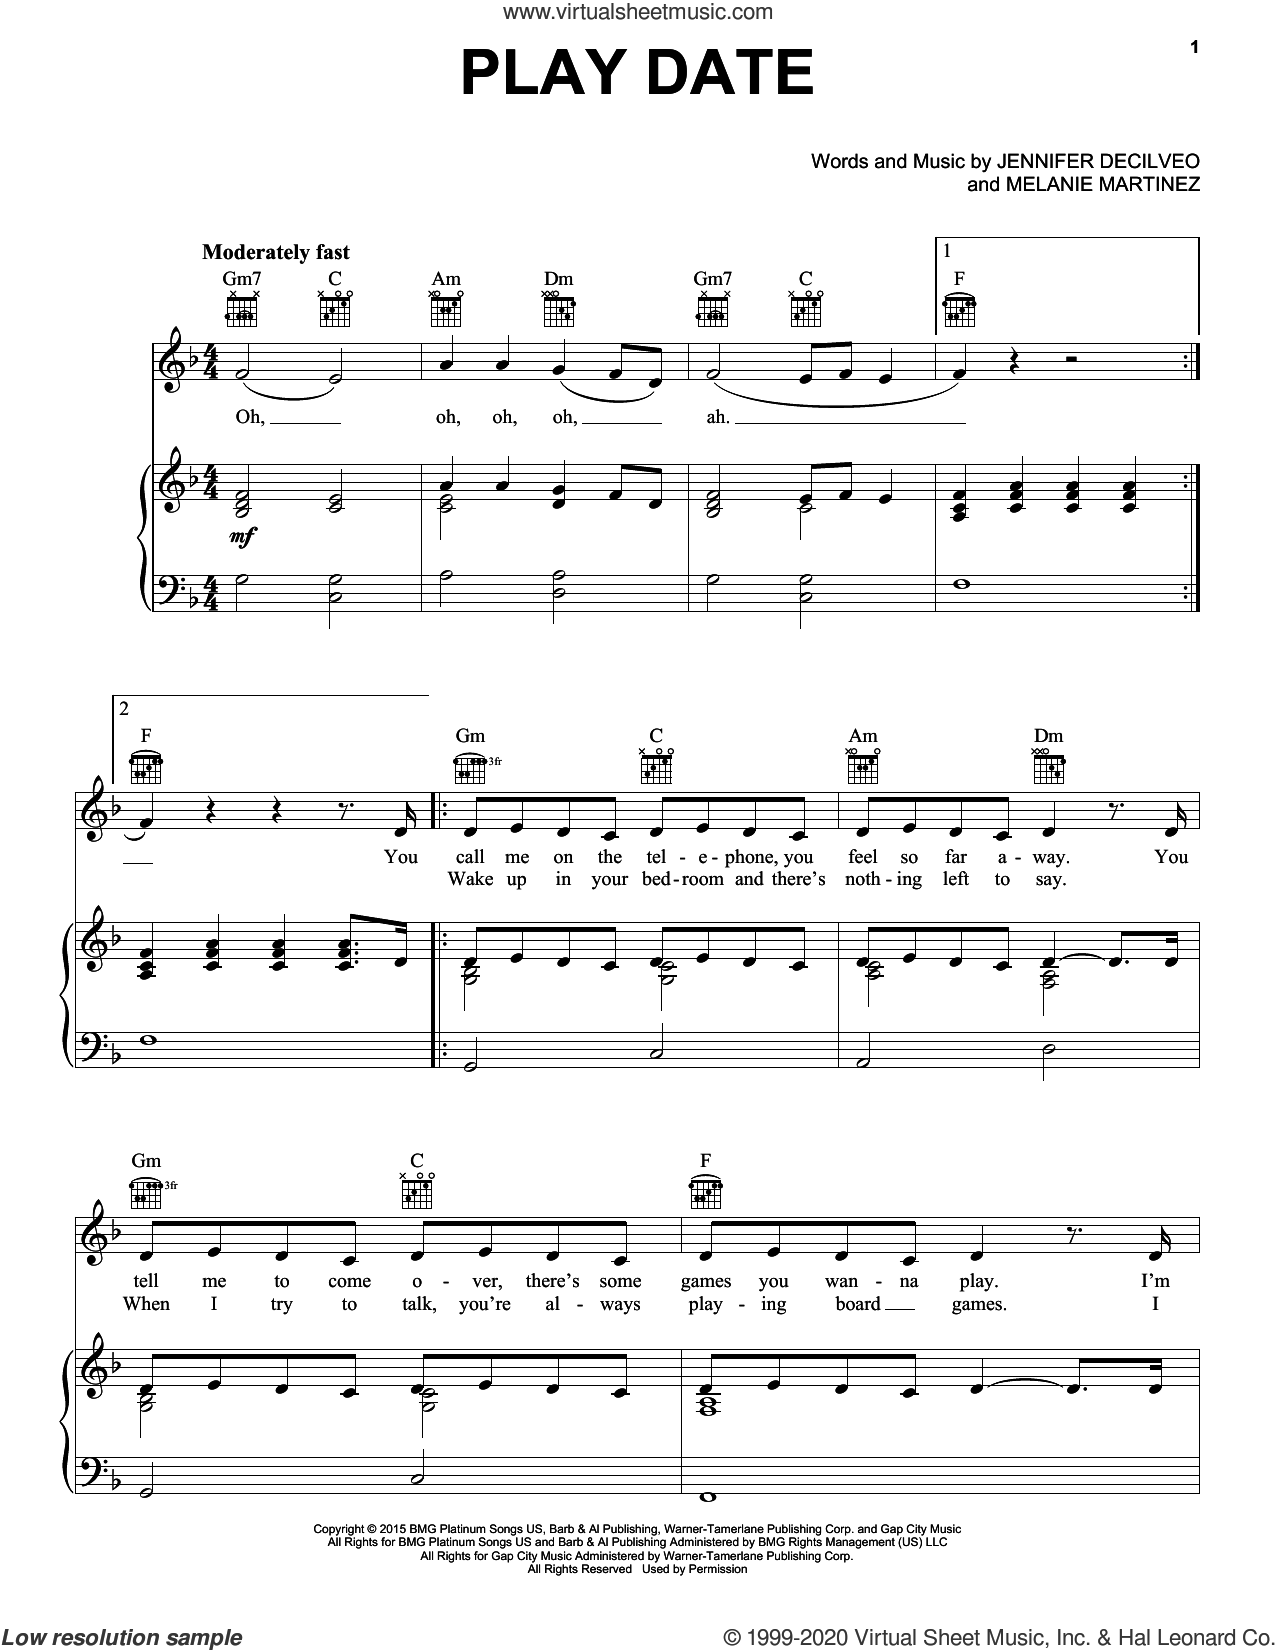 Play Date sheet music for voice, piano or guitar by Melanie Martinez and Jennifer Decilveo, intermediate skill level